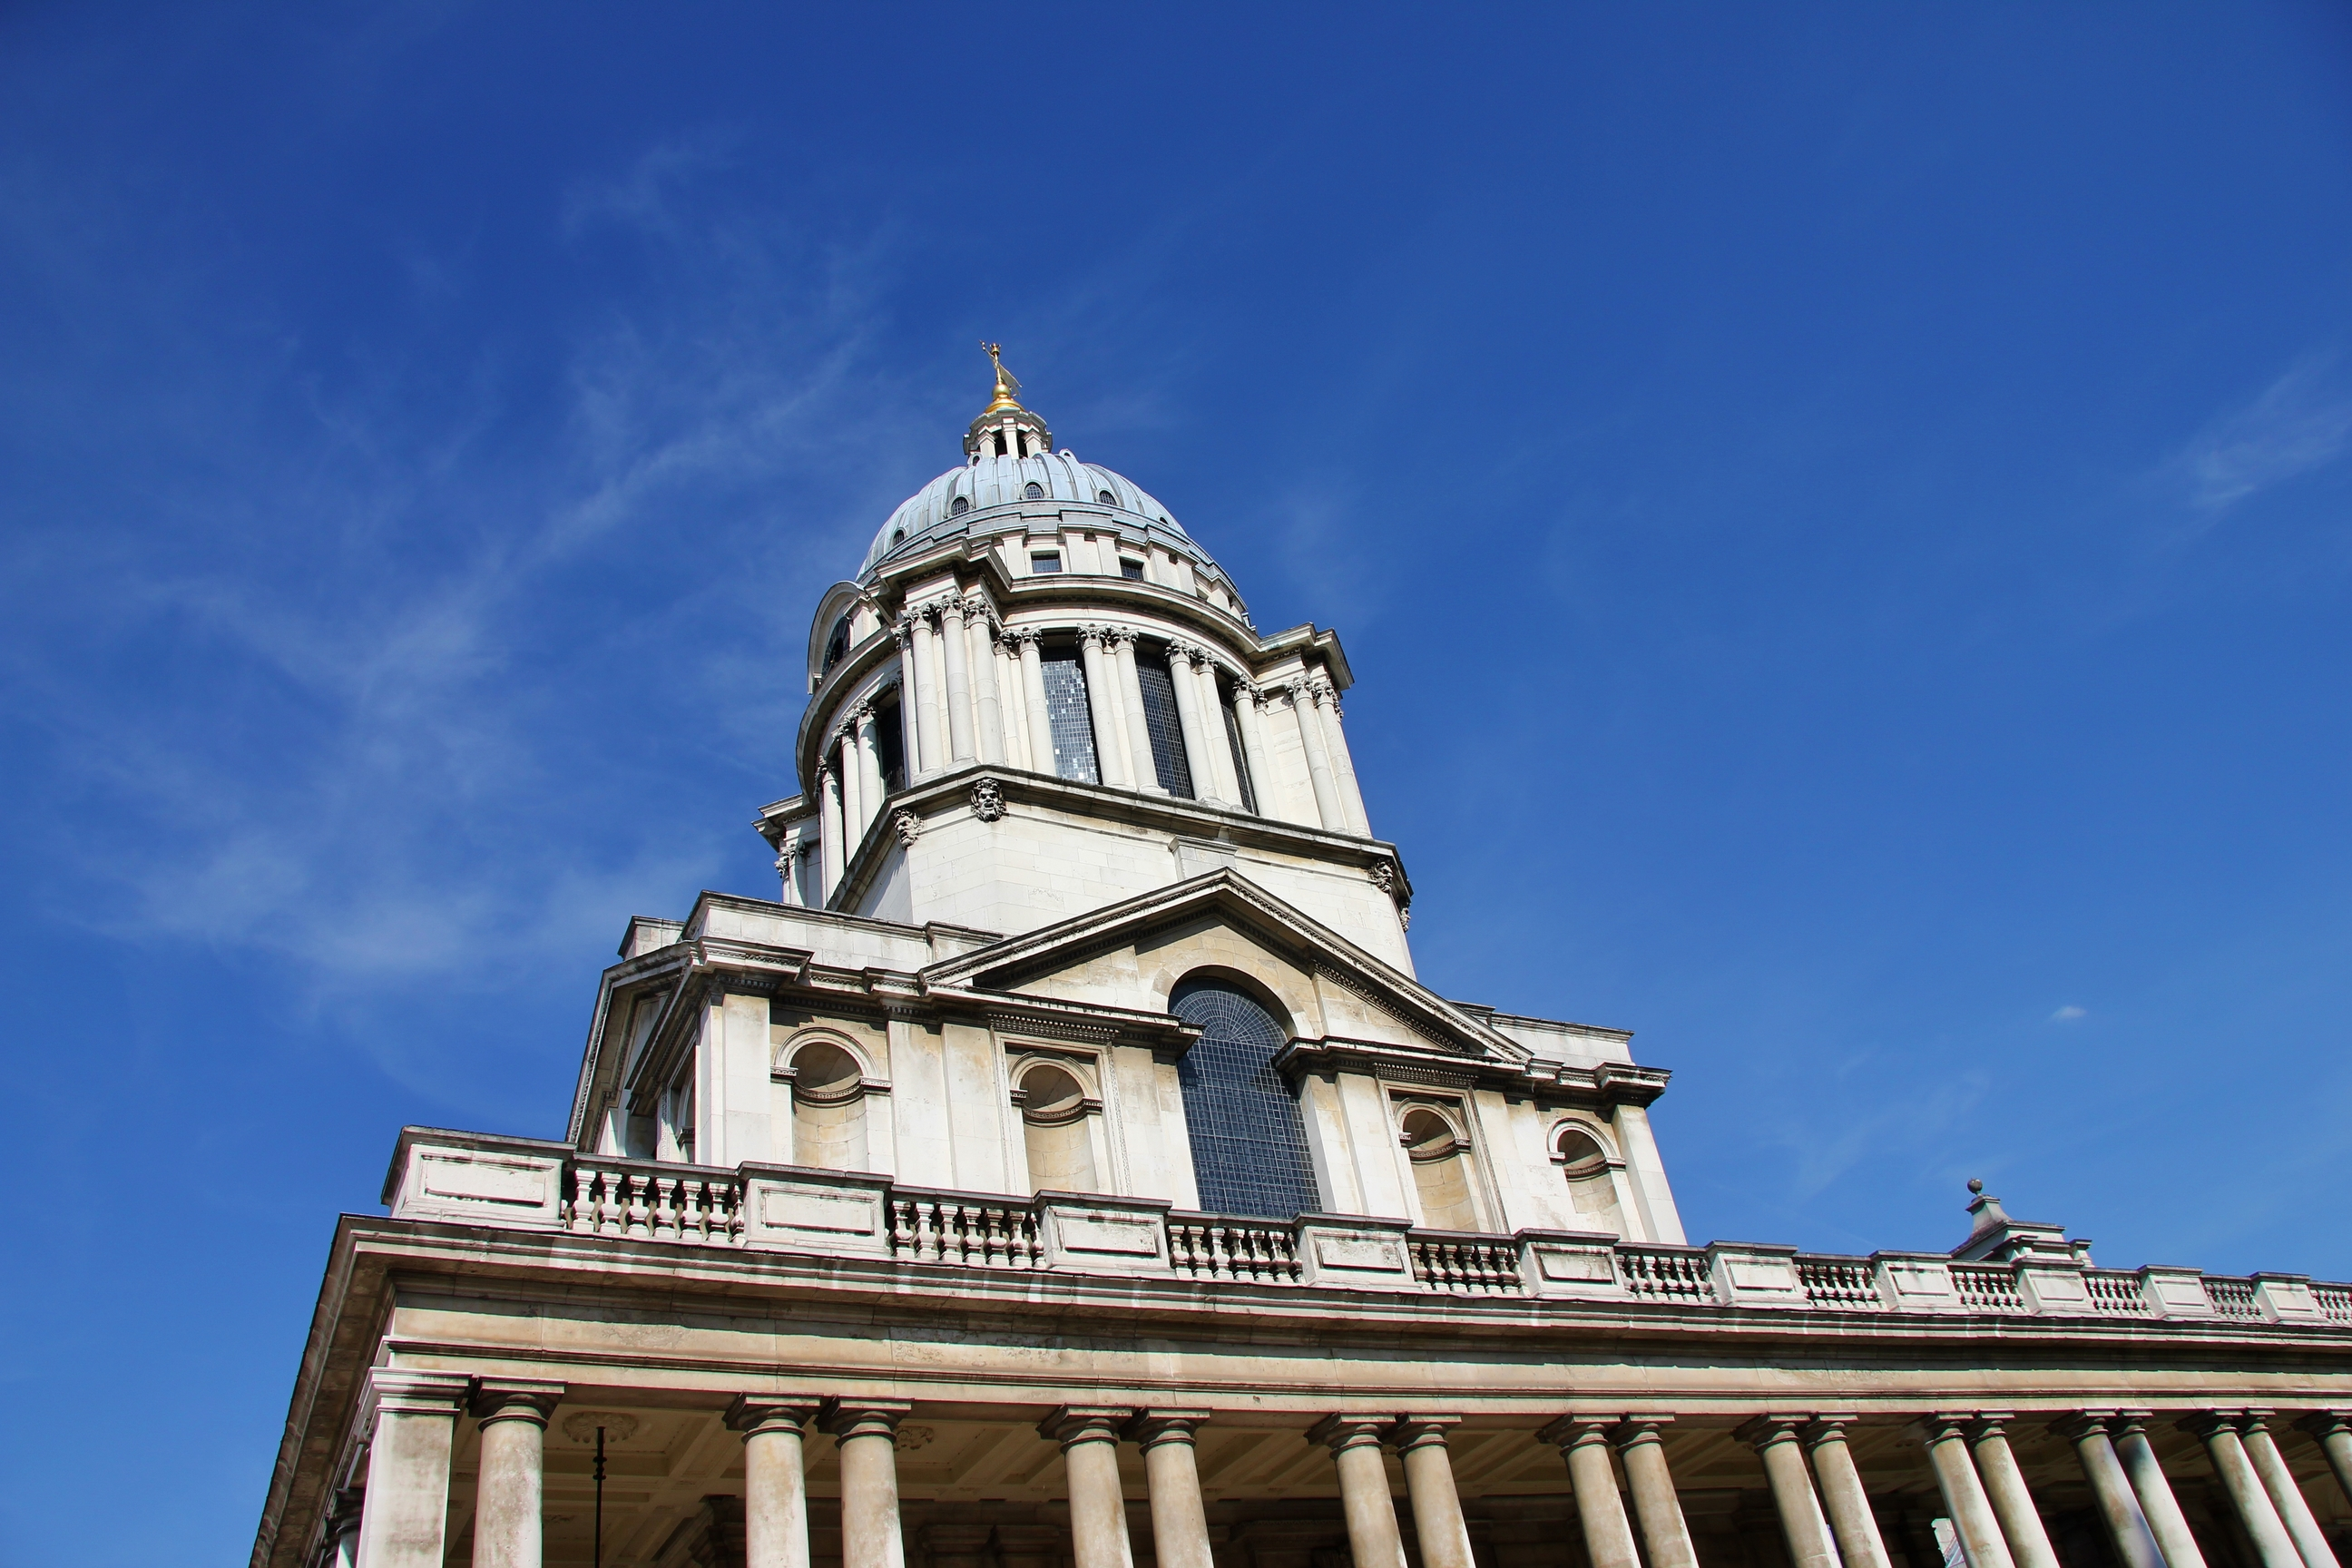 Historical buildings in Greenwich, London